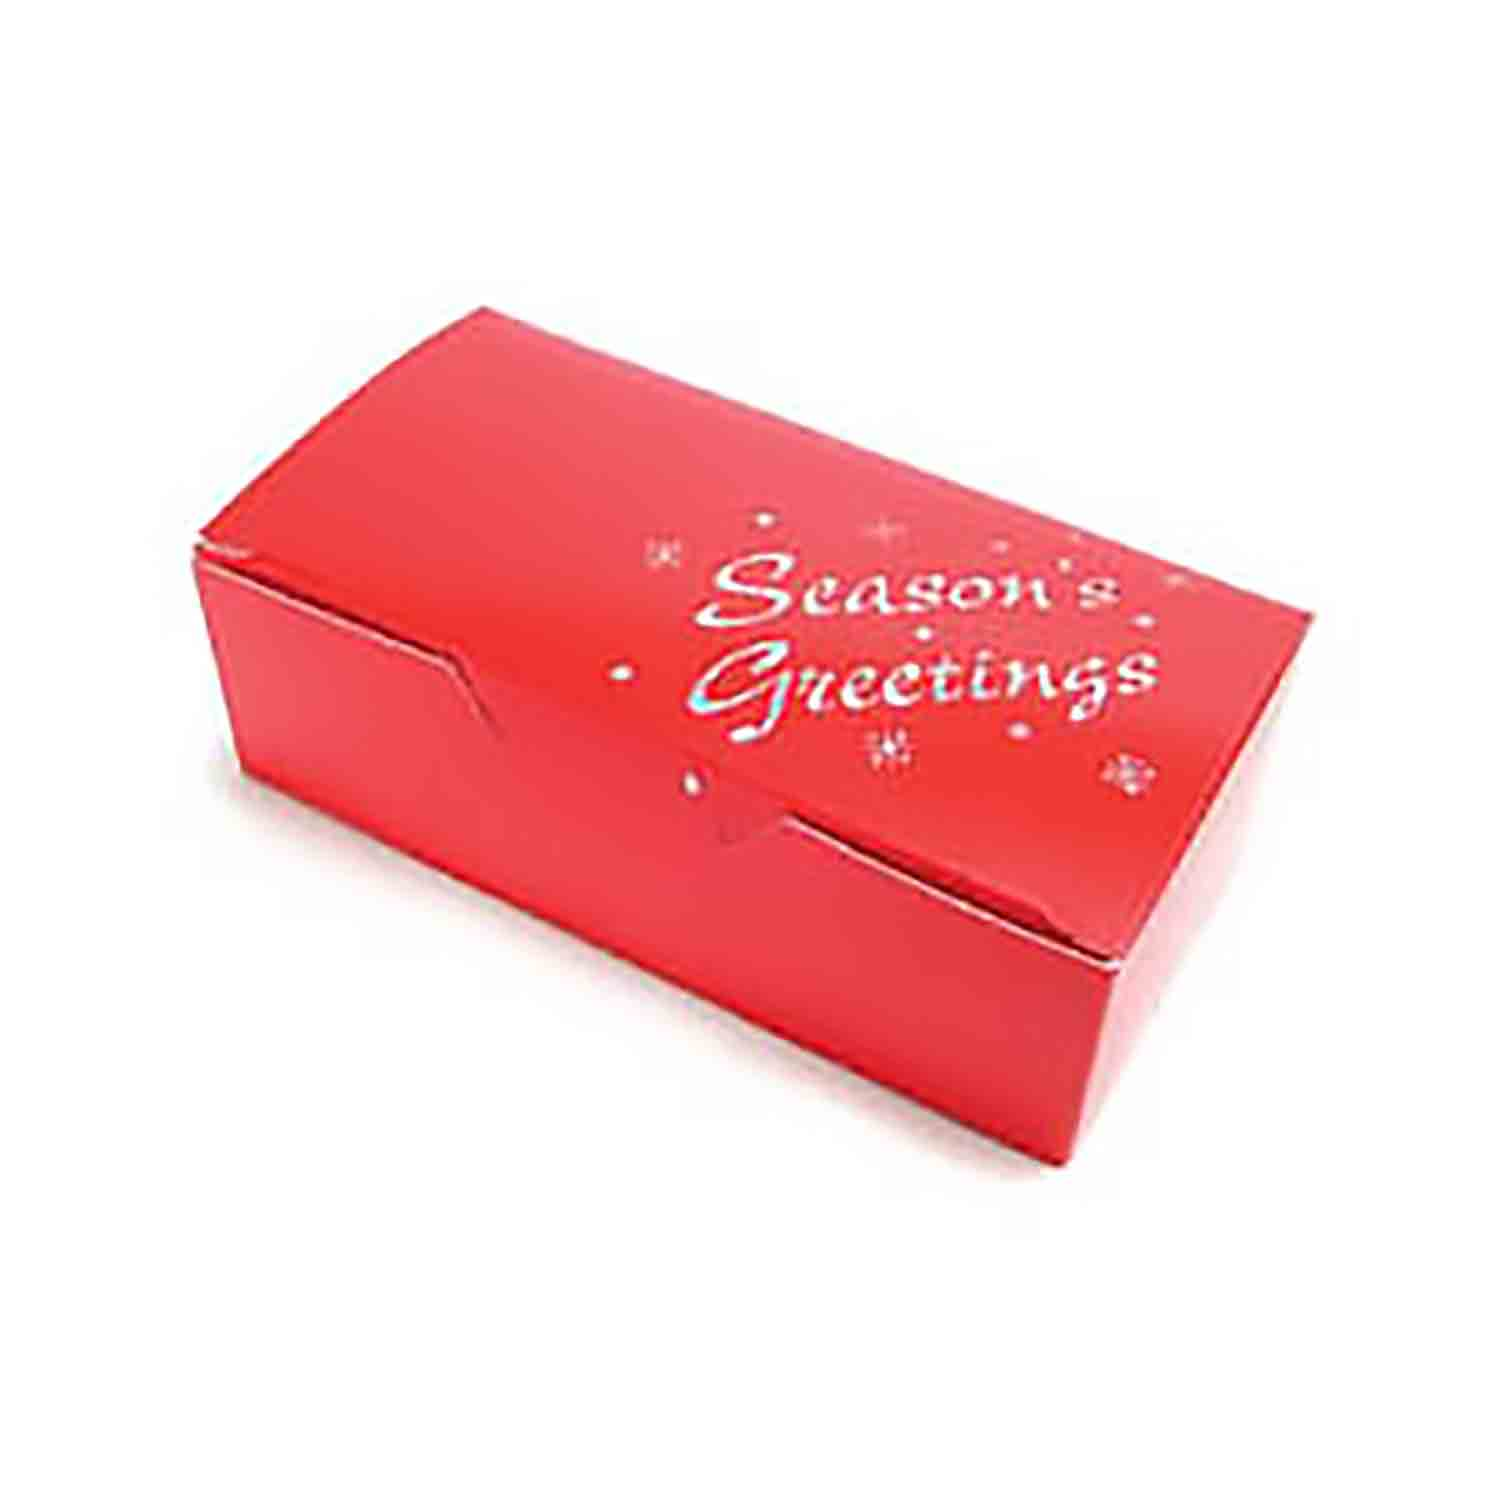 1 1/2 lb. Red Season's Greetings Candy Box